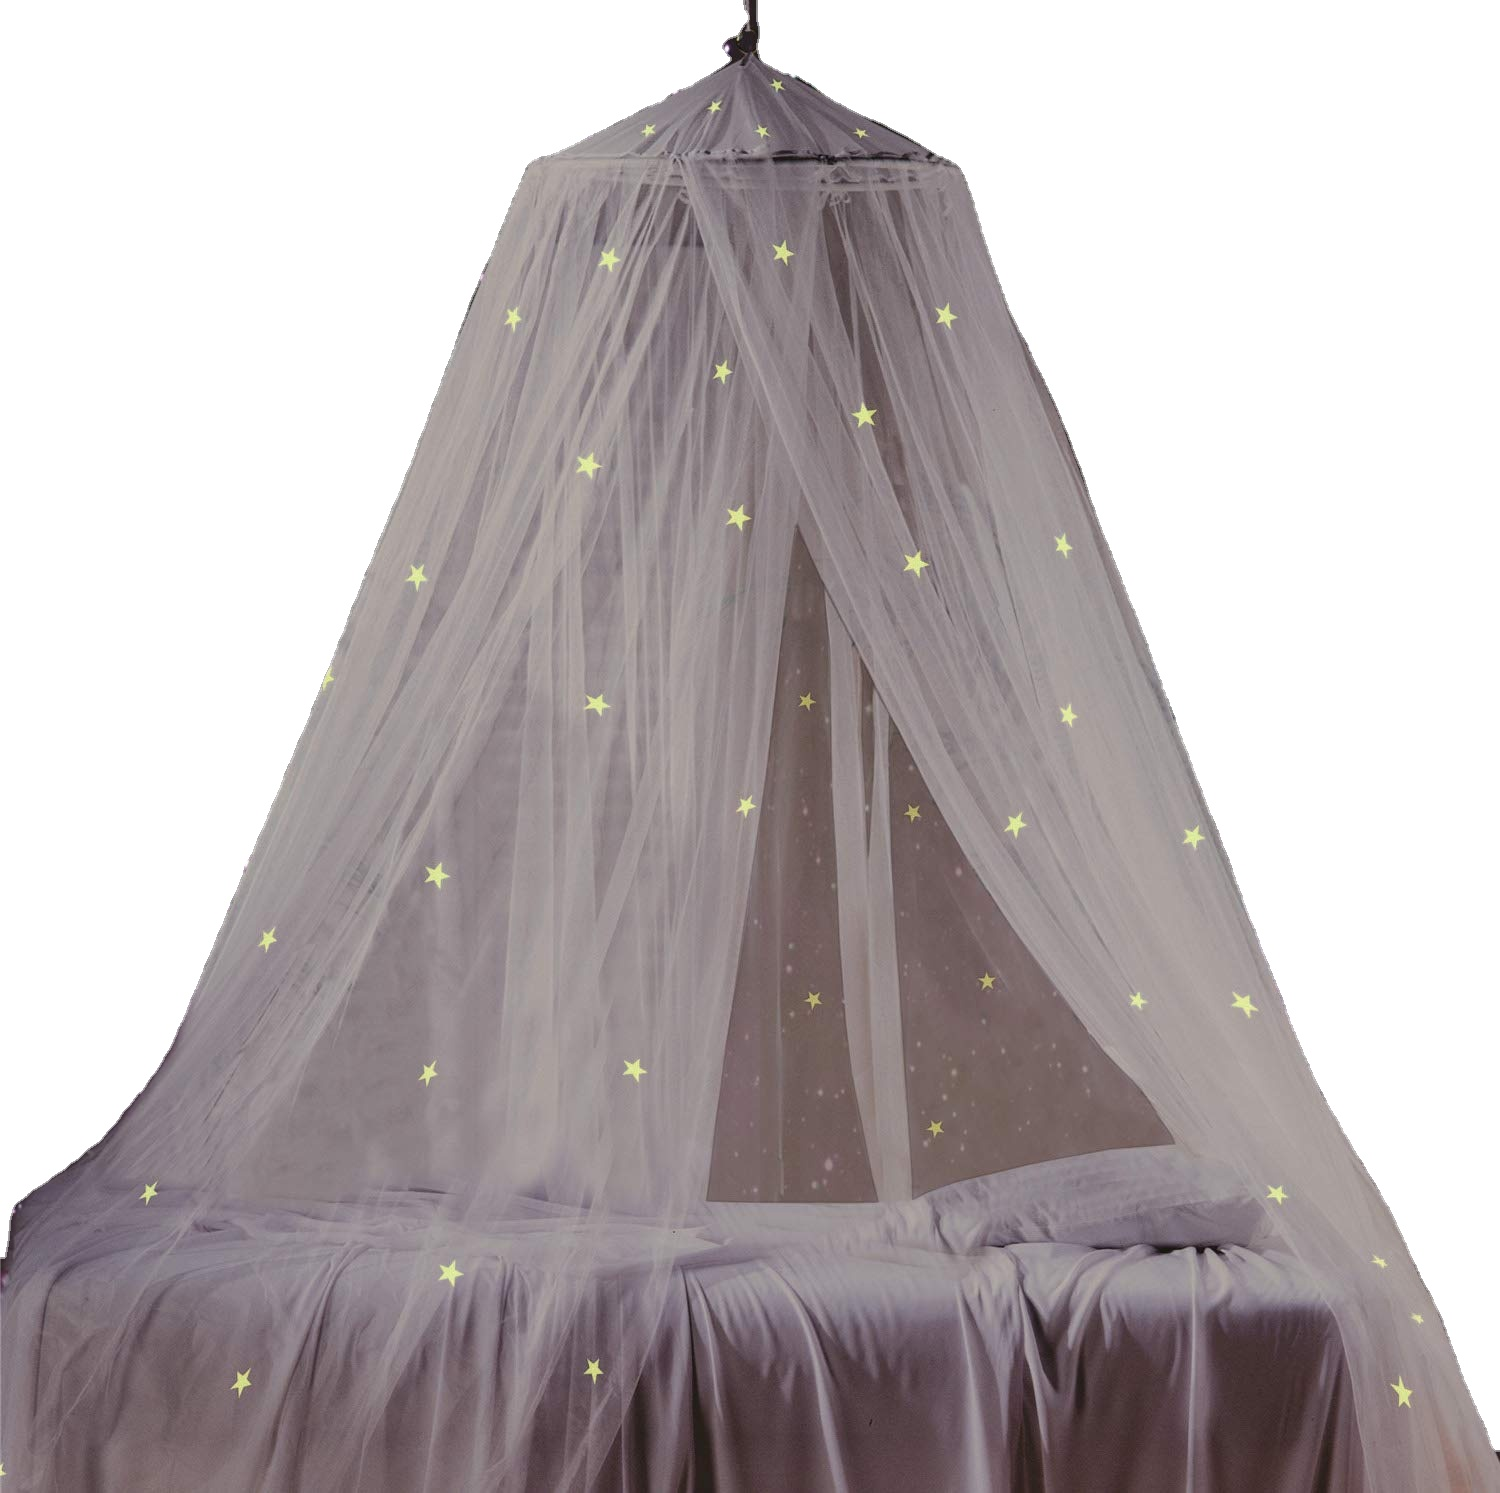 Amazing Best Sales Growing In The Dark Stars Theme Set Black Bed Canopy Mosquito Net